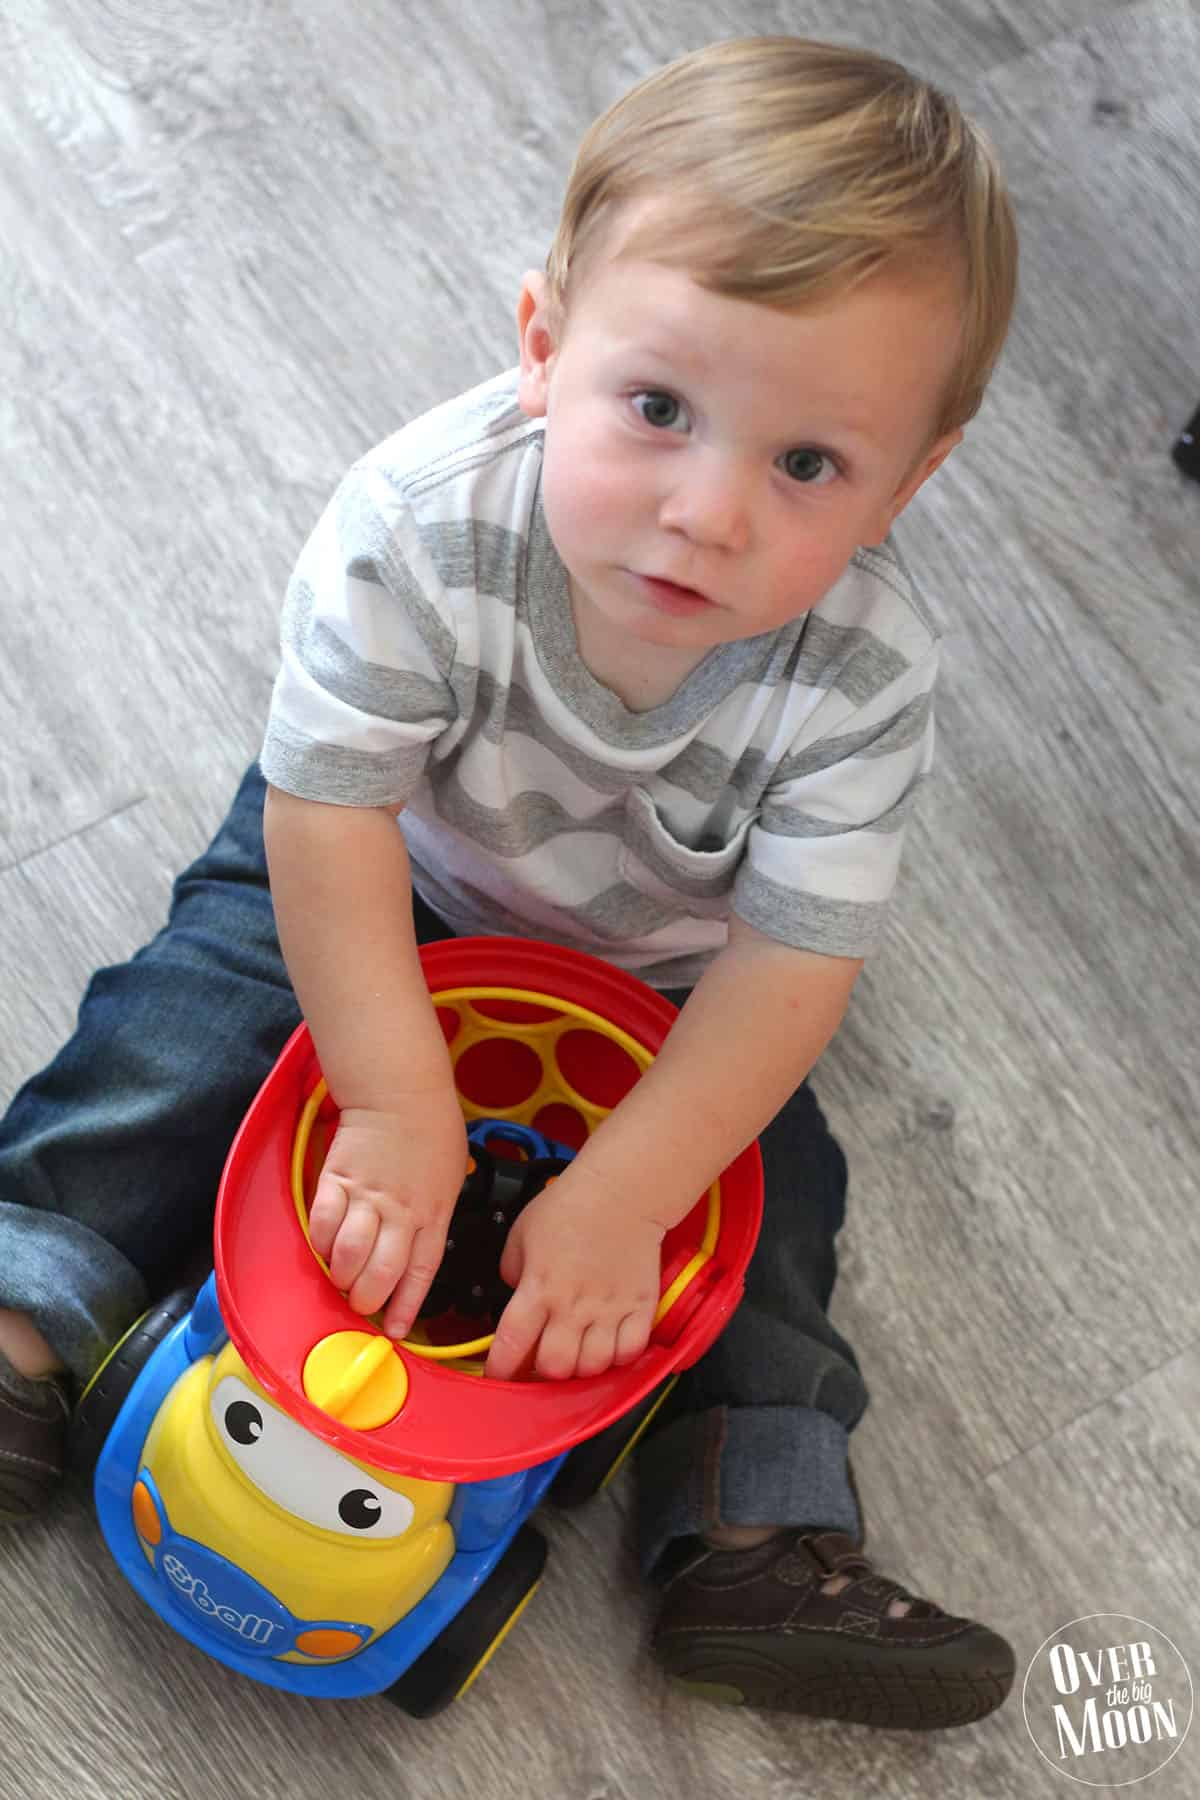 Go Grippers toy line is so much fun! Perfect for toddlers! My nephew loved it all!